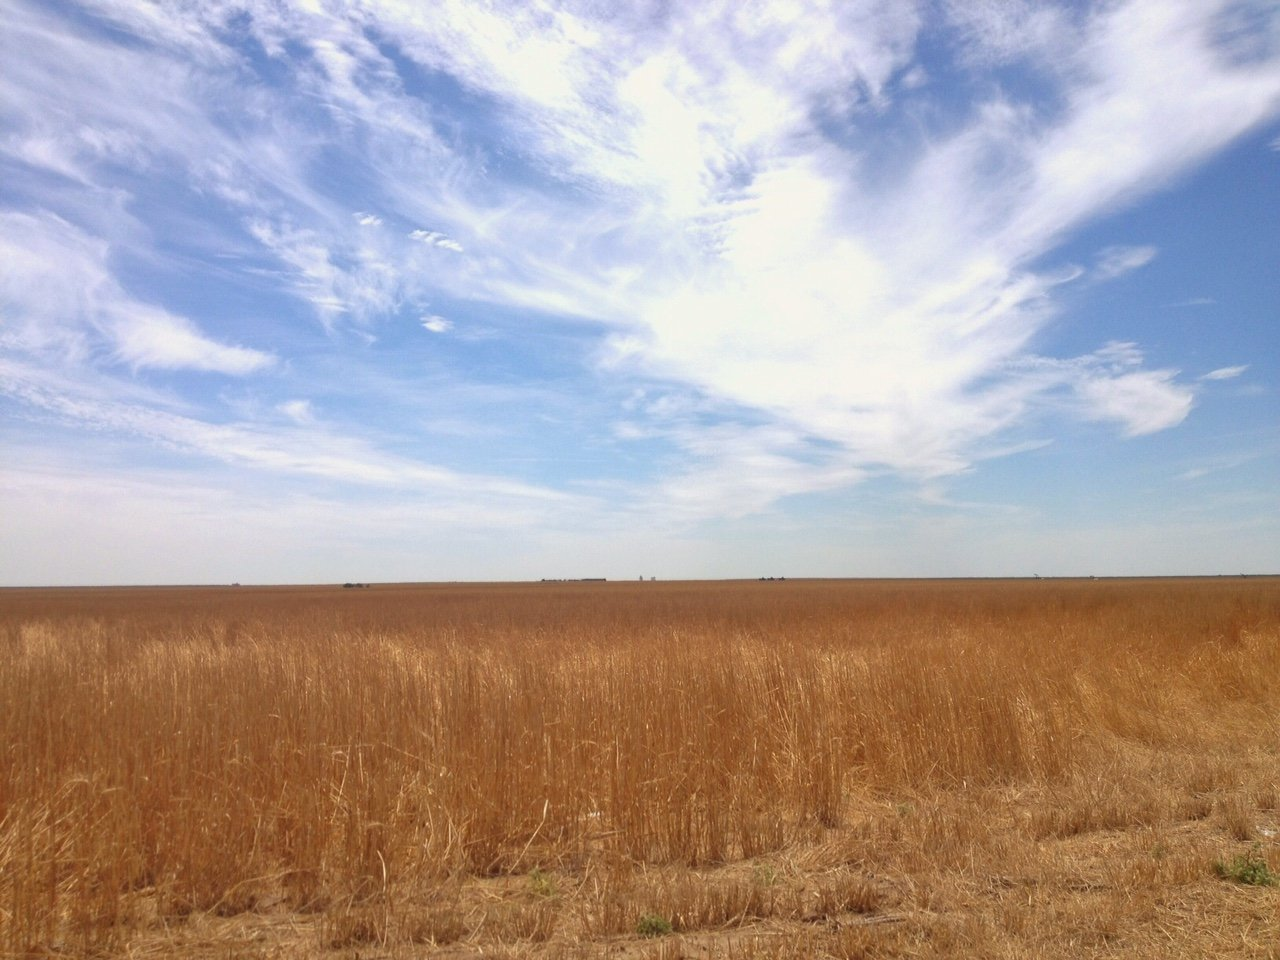 Wheat field in Logan County, Kansas (File photo from J. Schafer)